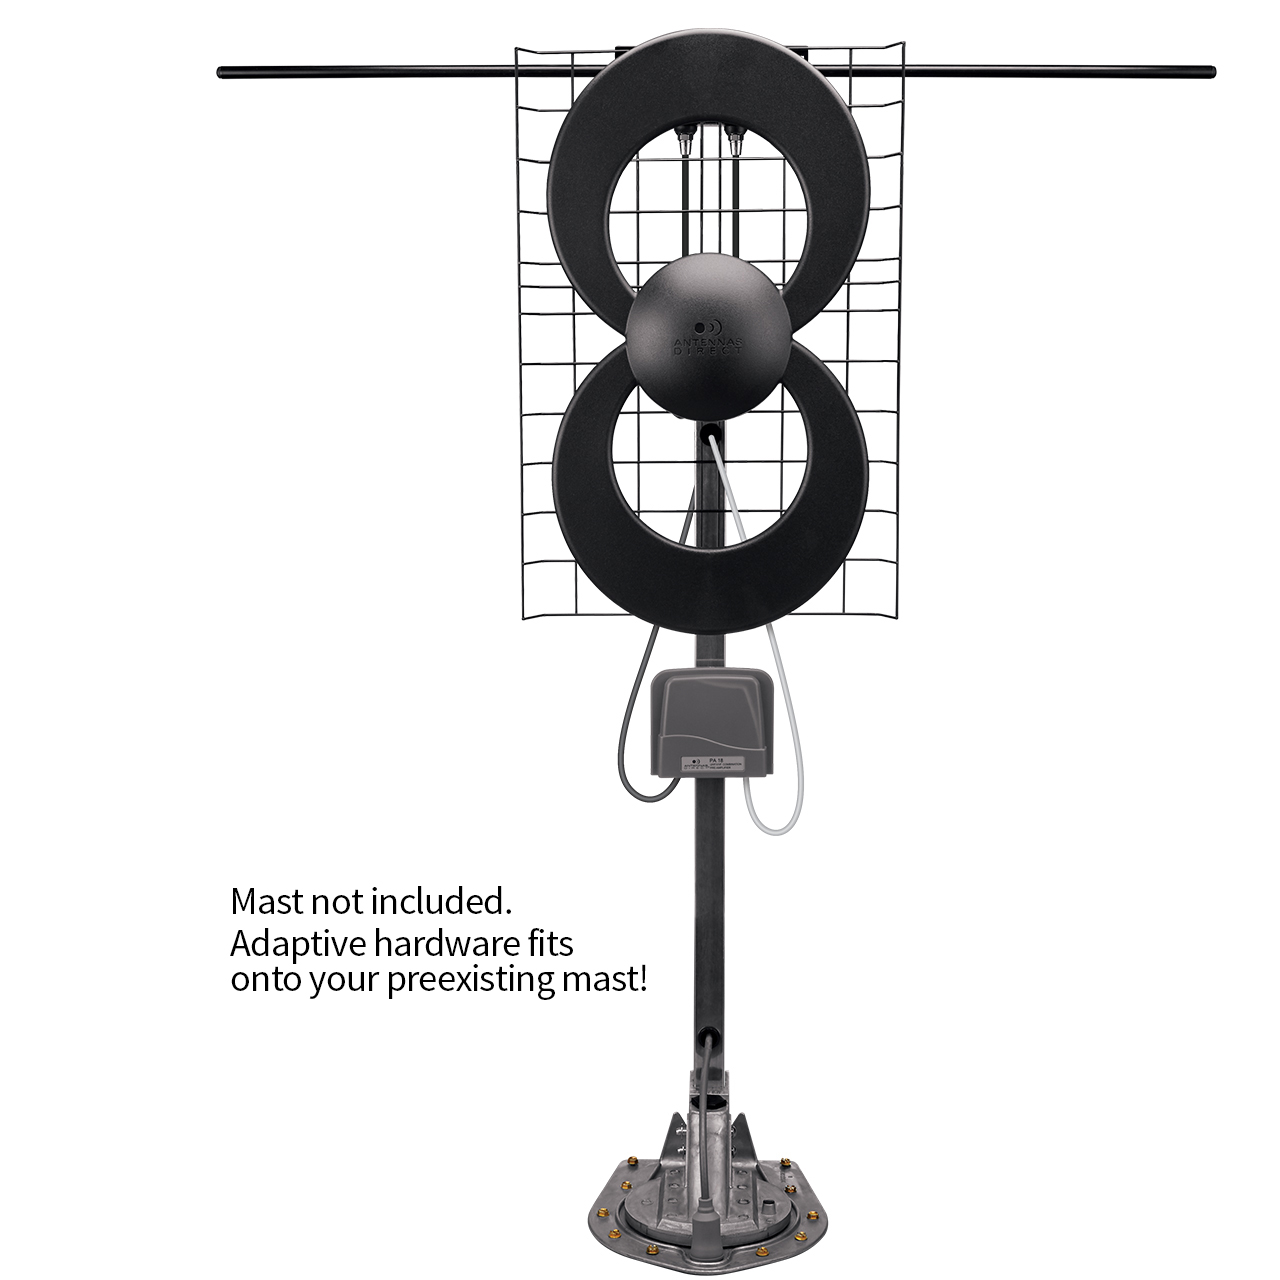 https://www.antennasdirect.com - ClearStream 2 RV TV Antenna